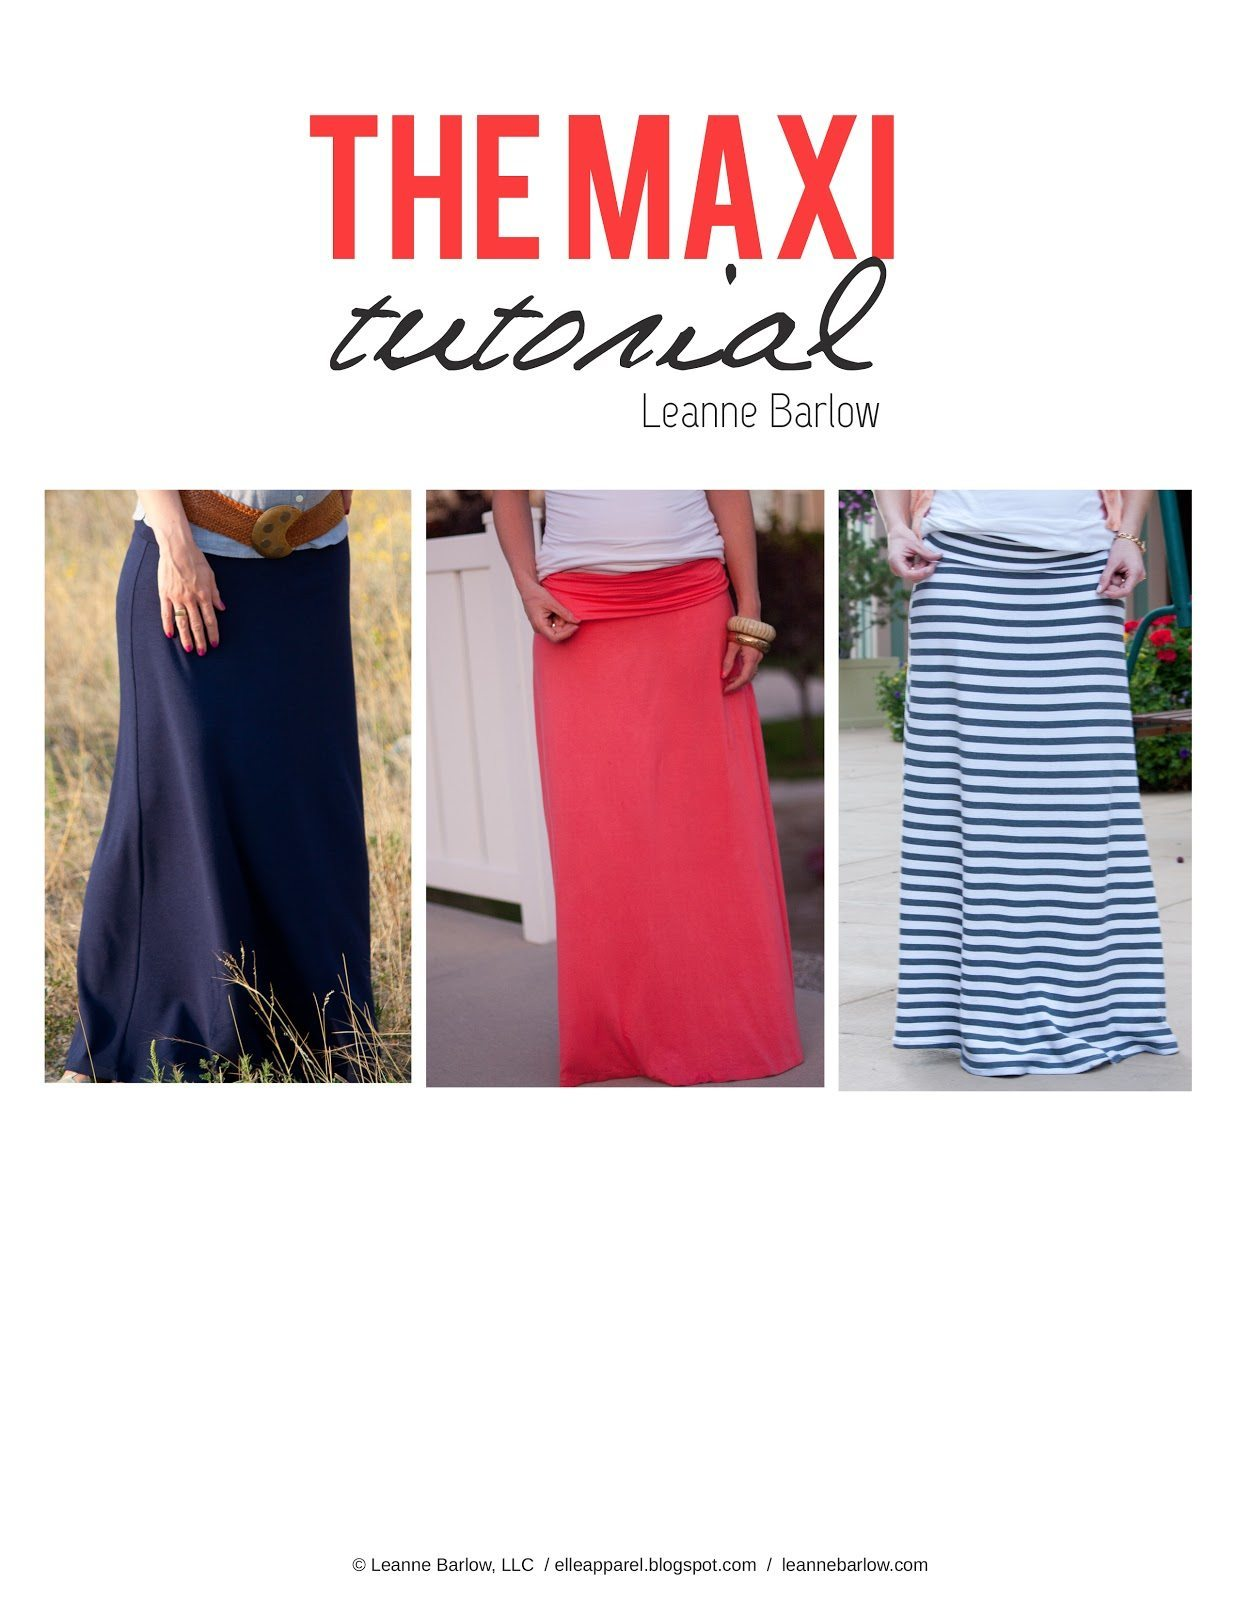 The Maxi tutorial revisted